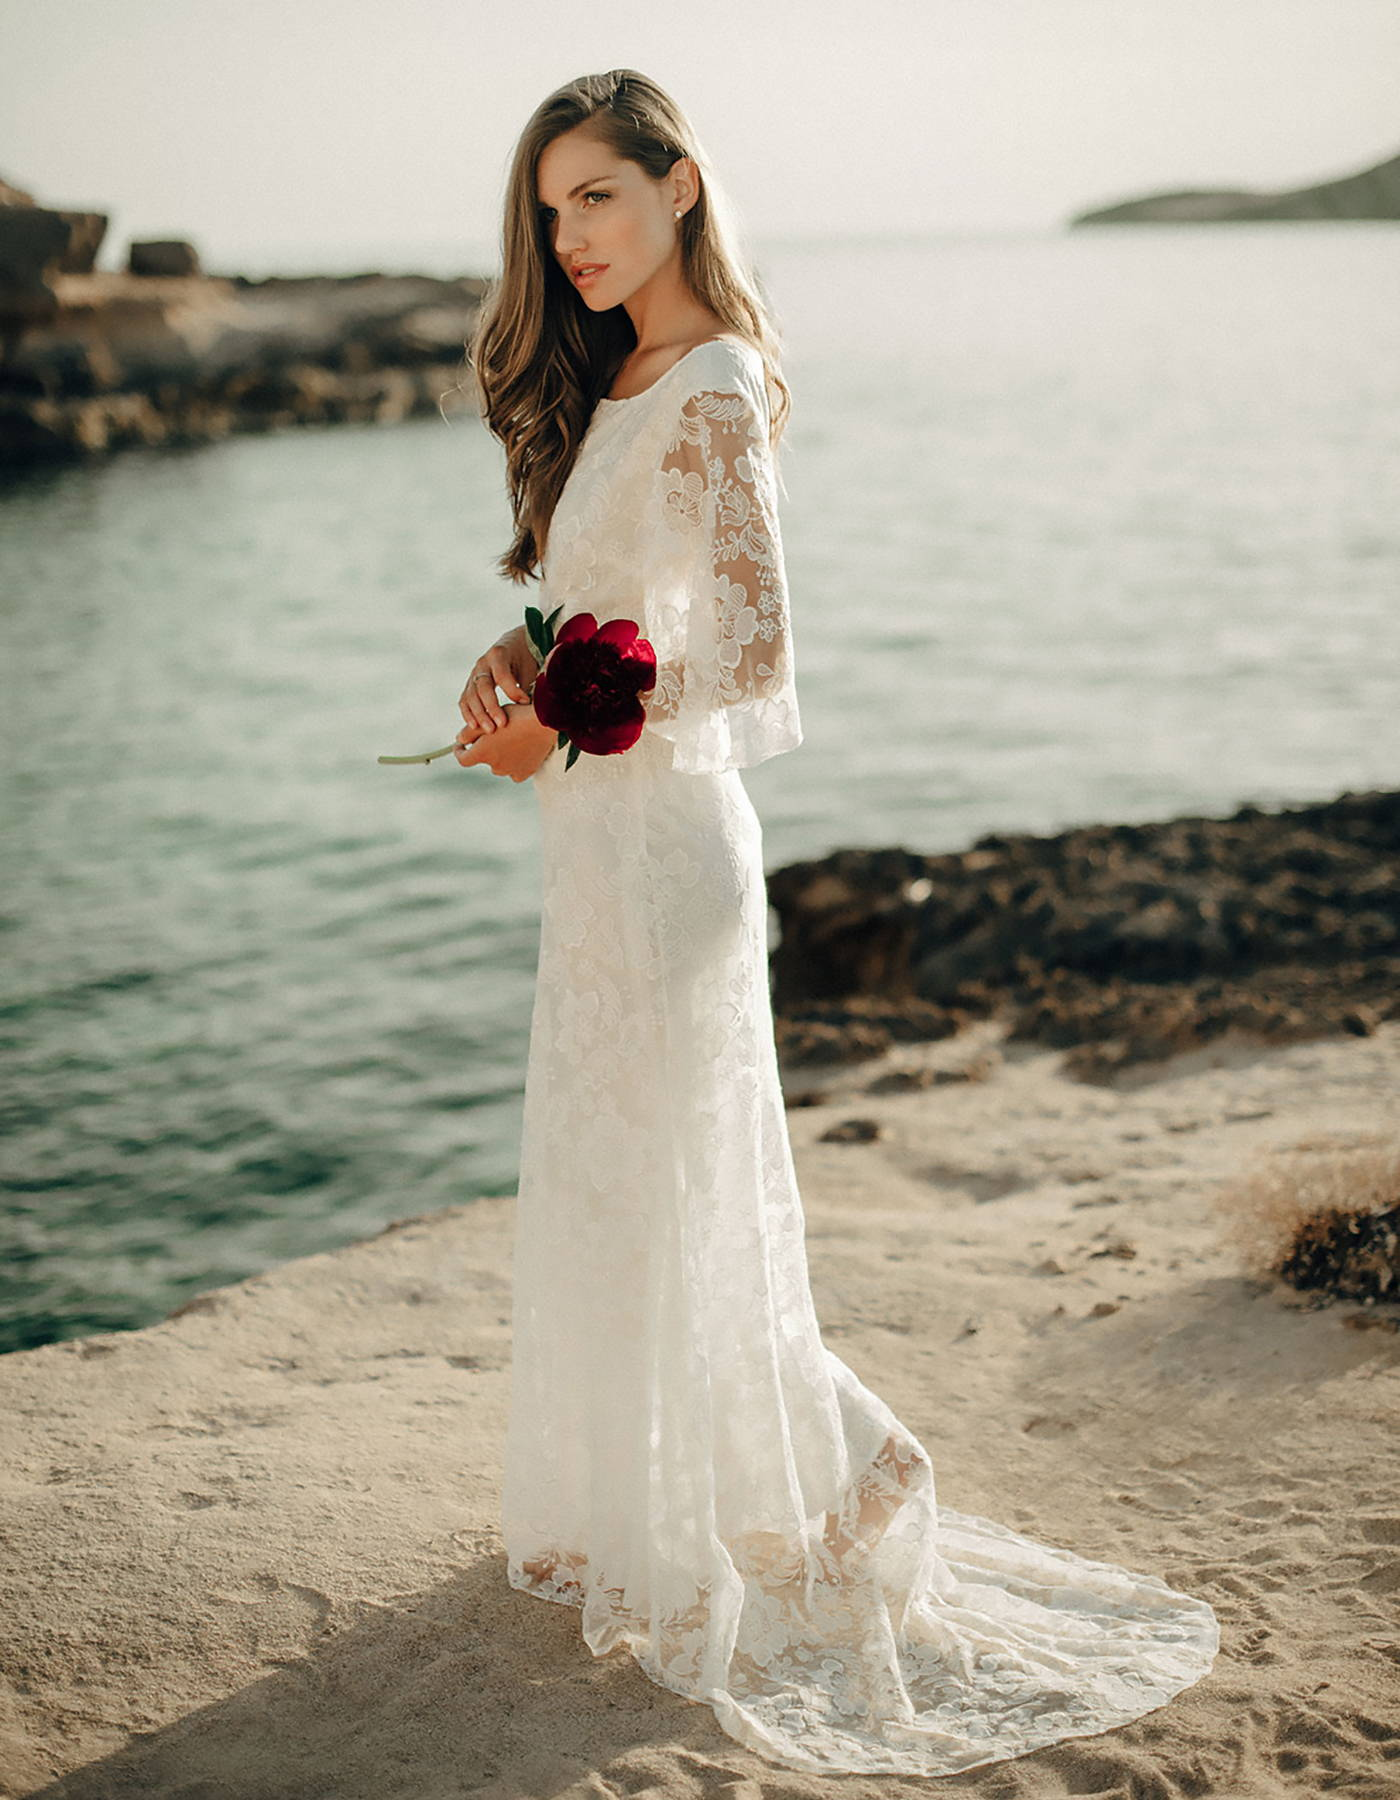 This vintage style lace wedding dress has sheer flutter sleeves and is the perfect boho wedding dress.